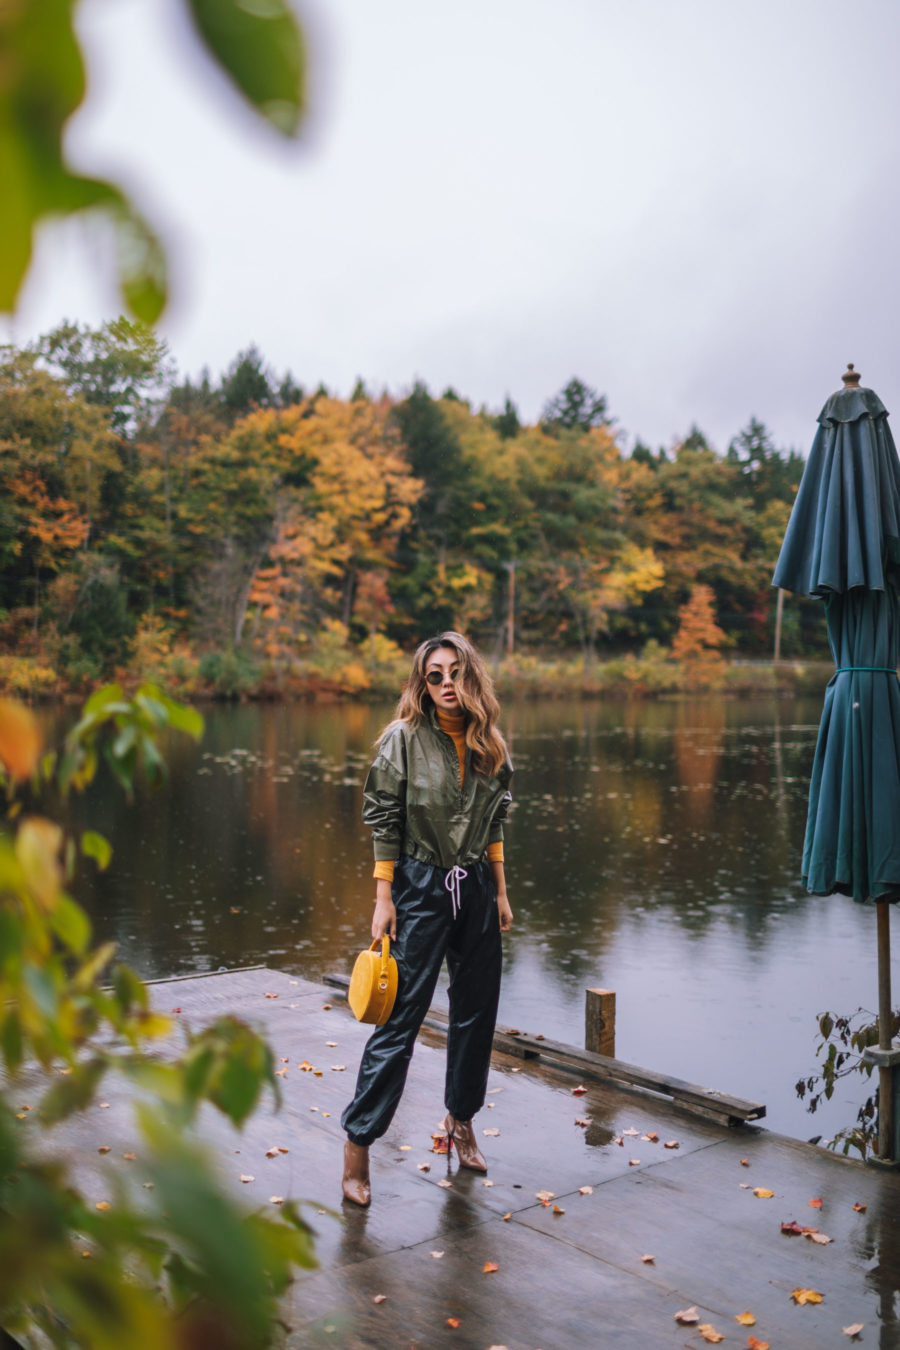 fashion blogger jessica wang wearing joggers and windbreaker while enjoying fun fall activities with her family // Jessica Wang - Notjessfashion.com